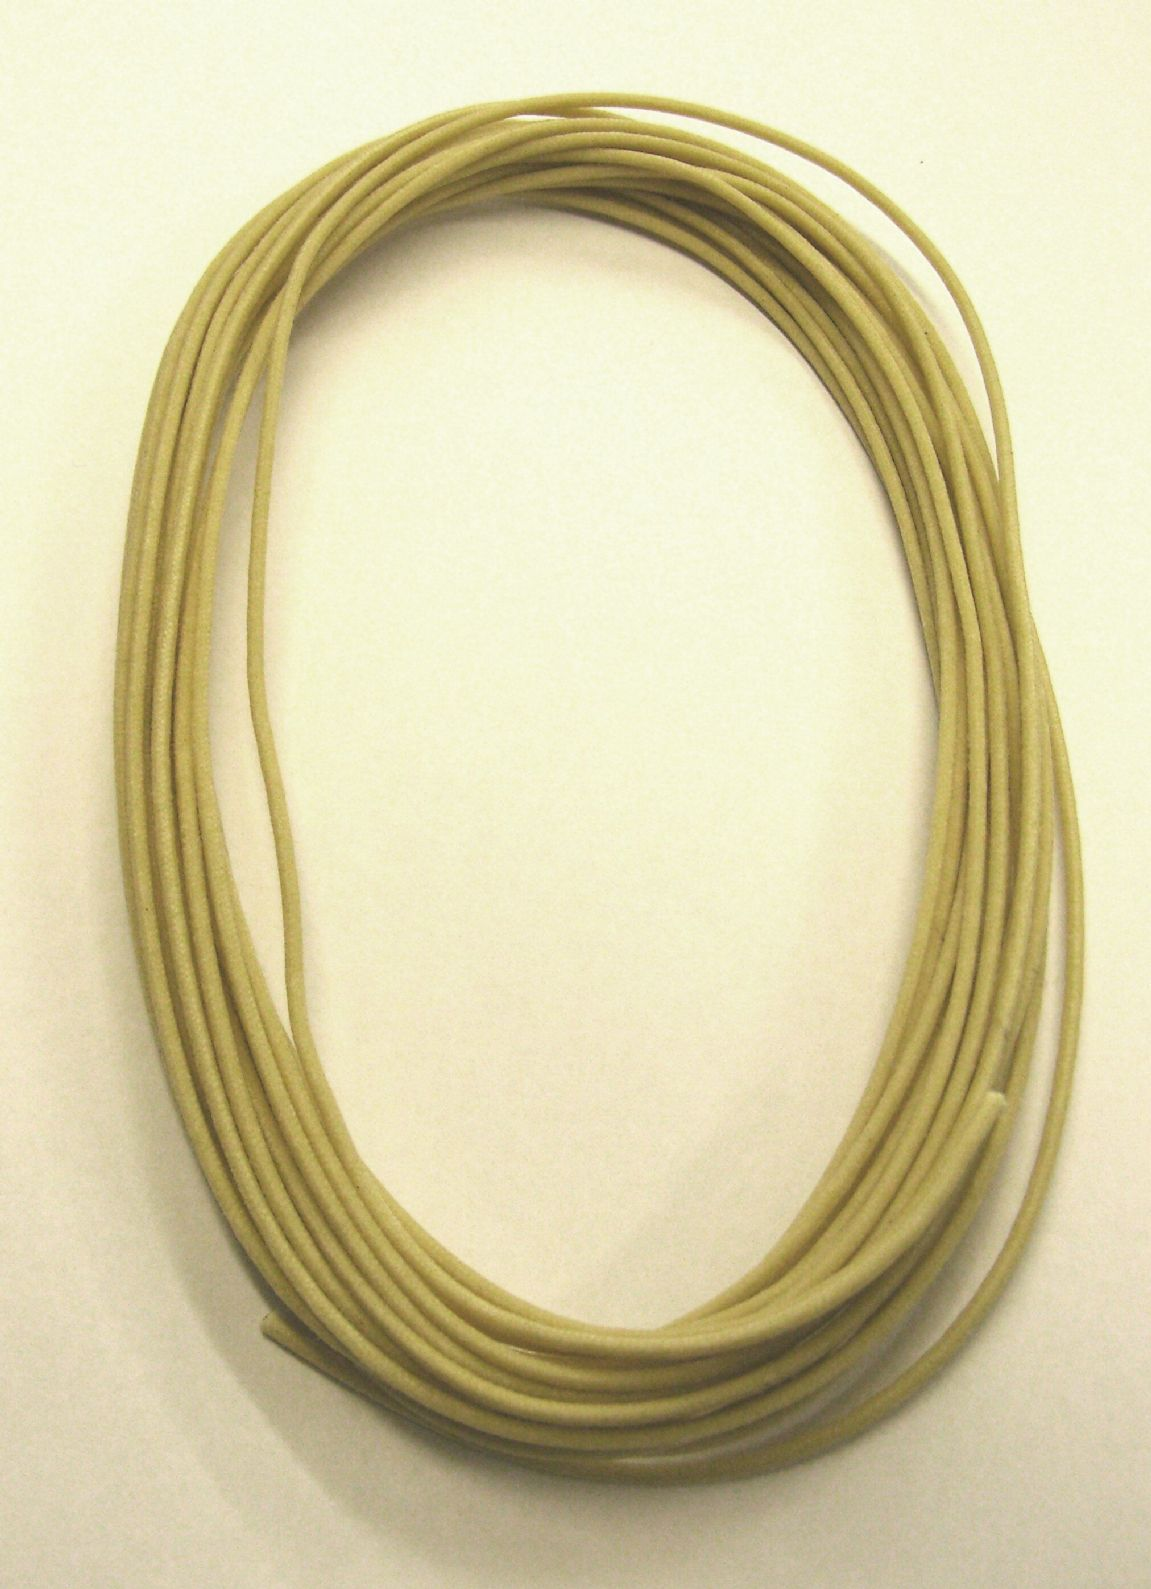 22 Gauge Vintage Type Cloth Covered Wire 25ft Off White GW-0820-025